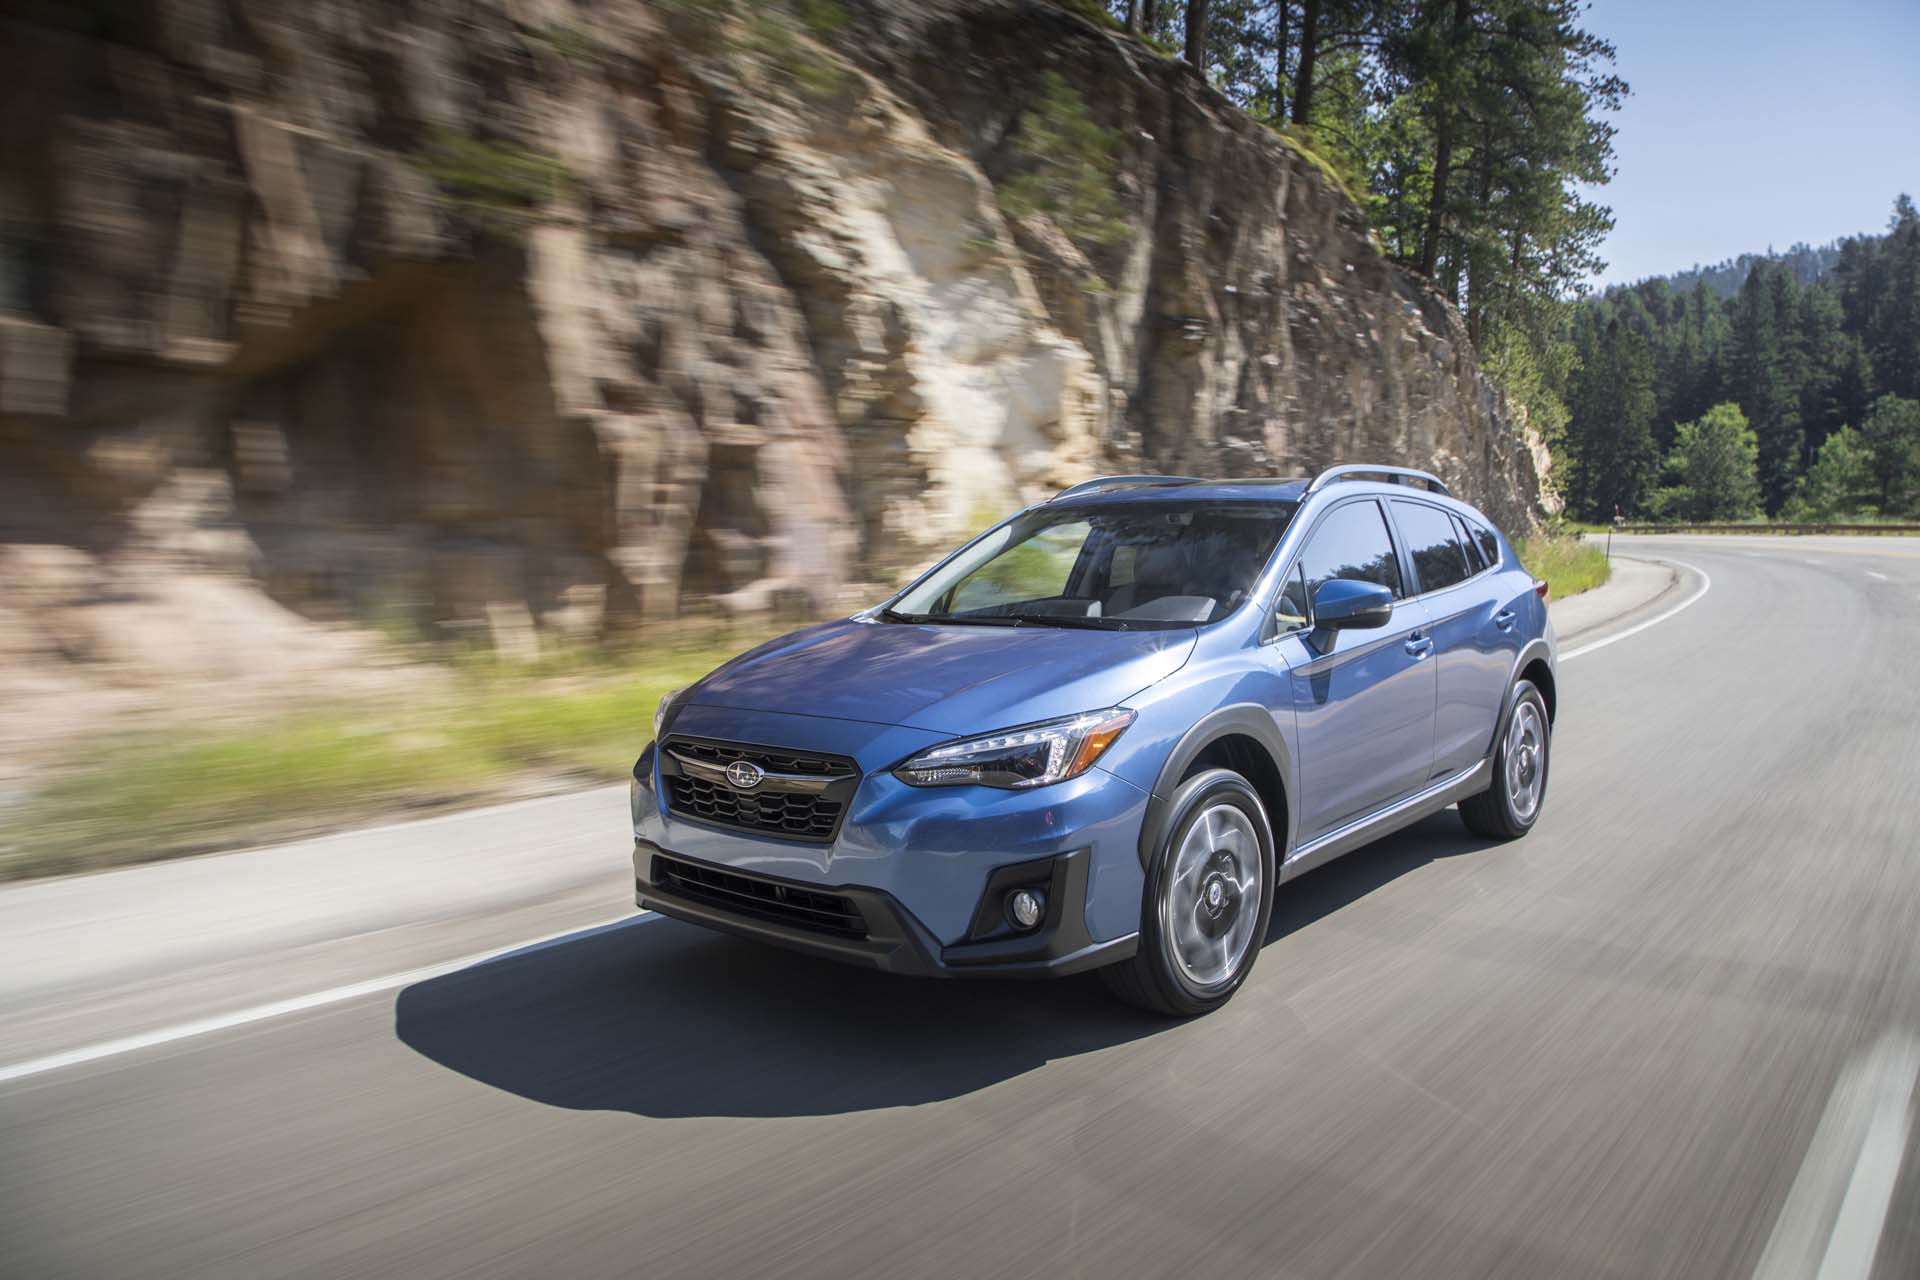 2018 Subaru Crosstrek Safety Review and Crash Test Ratings  The